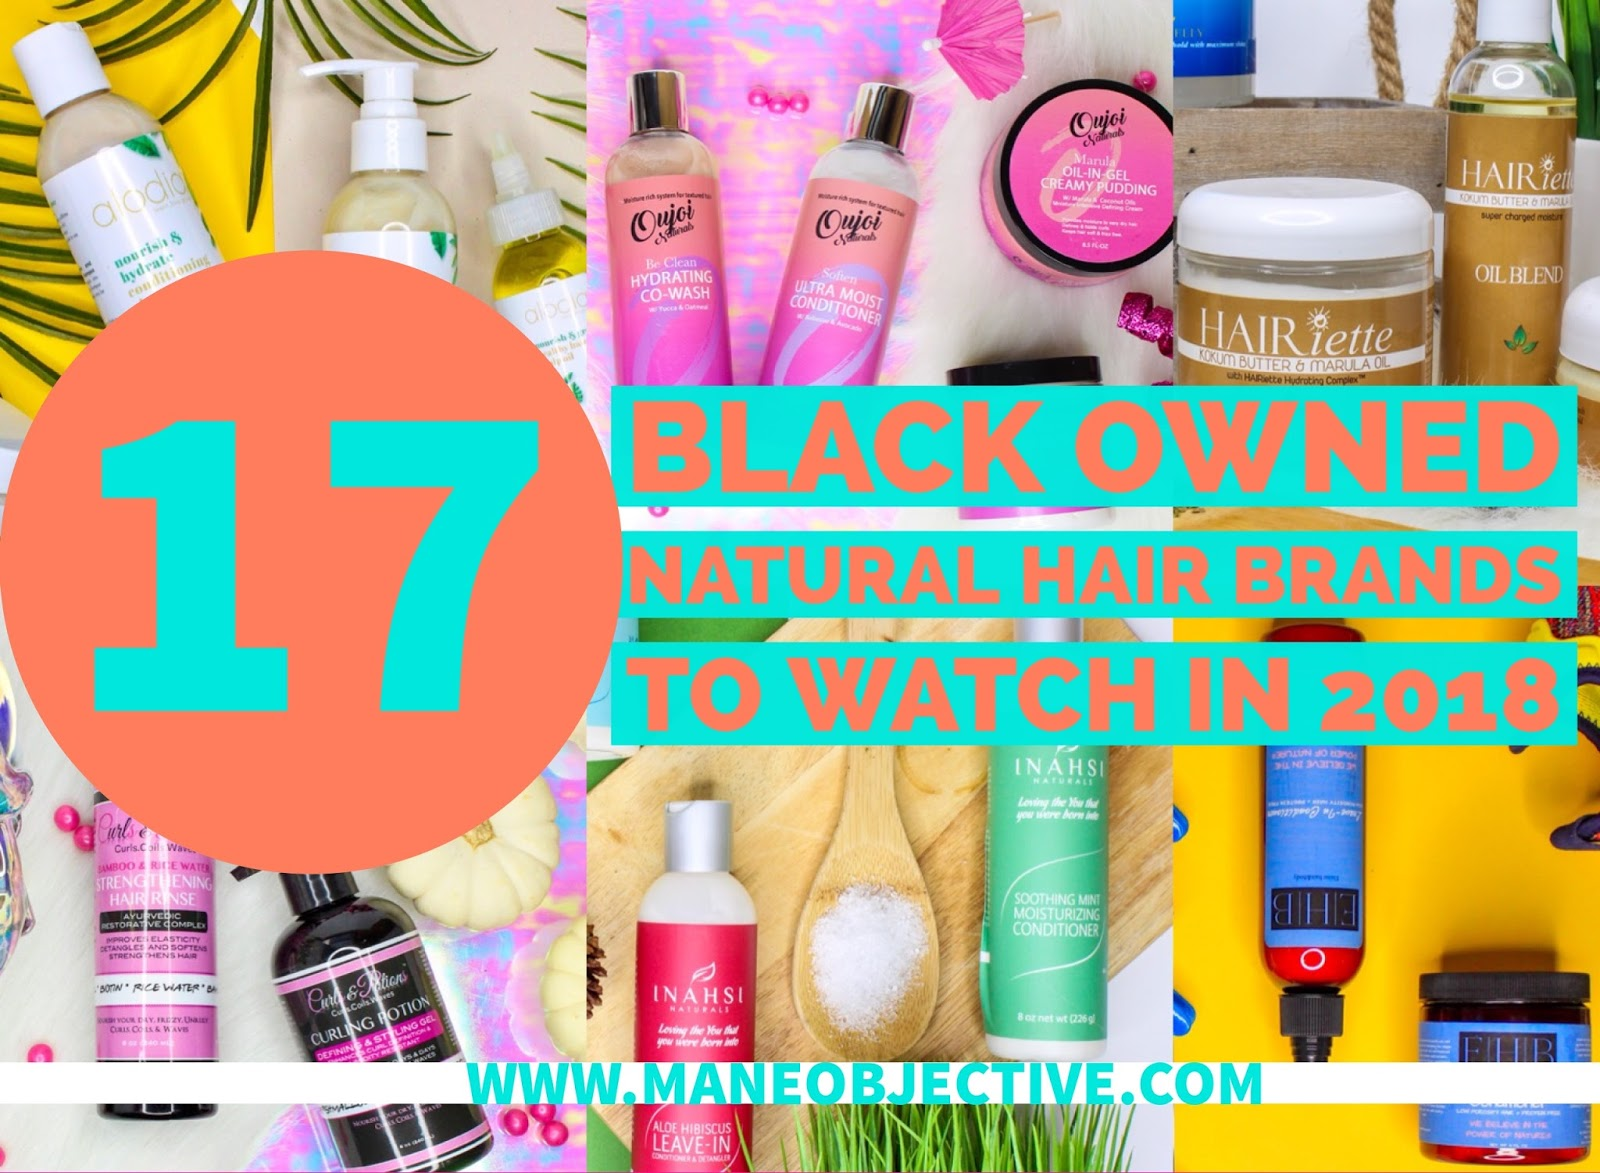 The Mane Objective 17 Black Owned Natural Hair Brands To Watch In 2018